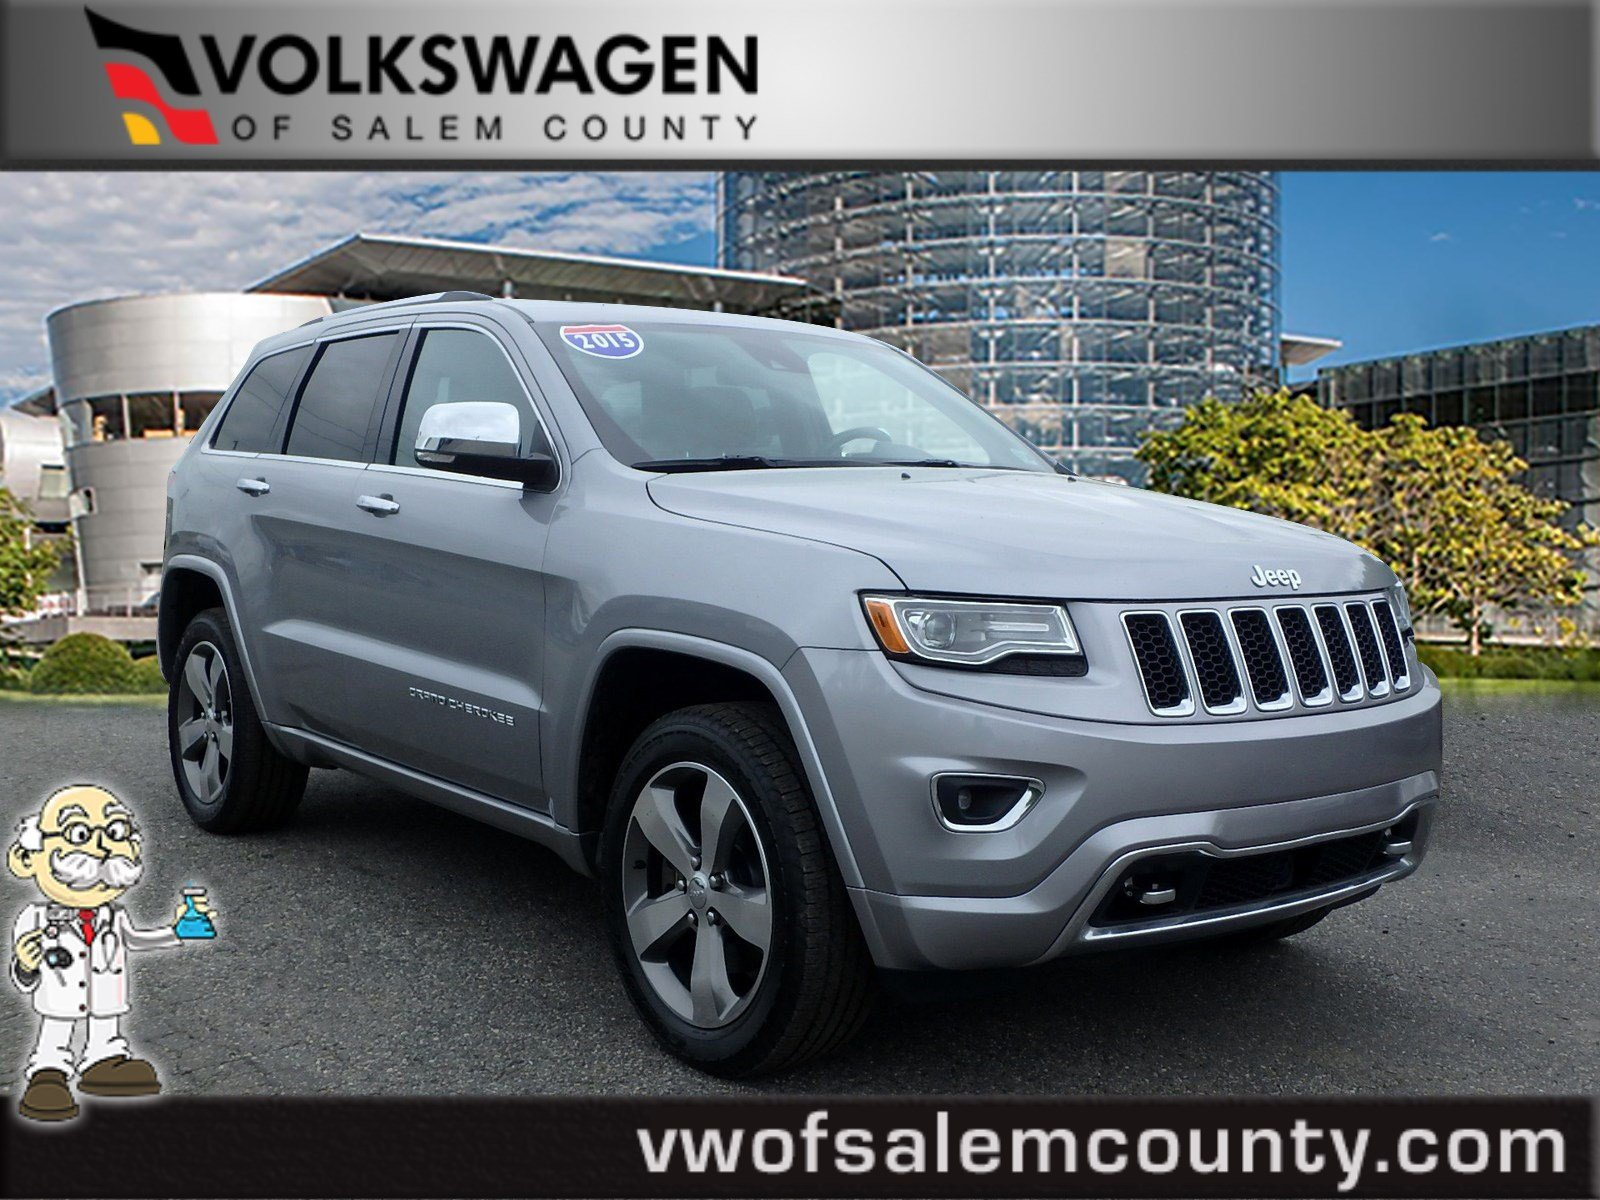 Pre-Owned 2015 Jeep Grand Cherokee Overland 4WD Sport Utility on 2015 jeep grand cherokee exhaust, 2015 jeep grand cherokee owners manual, 2015 jeep grand cherokee oil filter, 2015 jeep grand cherokee frame, 2015 jeep grand cherokee hood, 2015 jeep grand cherokee engine, 2015 jeep grand cherokee transfer case, 2015 jeep grand cherokee gas tank, 2015 jeep grand cherokee fender, 2015 jeep grand cherokee intake, 2015 jeep grand cherokee drive shaft, 2015 jeep grand cherokee instrument cluster, 2015 jeep grand cherokee seat, 2015 jeep grand cherokee shifter, 2015 jeep grand cherokee lights, 2015 jeep grand cherokee battery, 2015 jeep grand cherokee grille, 2015 jeep grand cherokee suspension, 2015 jeep grand cherokee wheels, 2015 jeep grand cherokee speedometer,